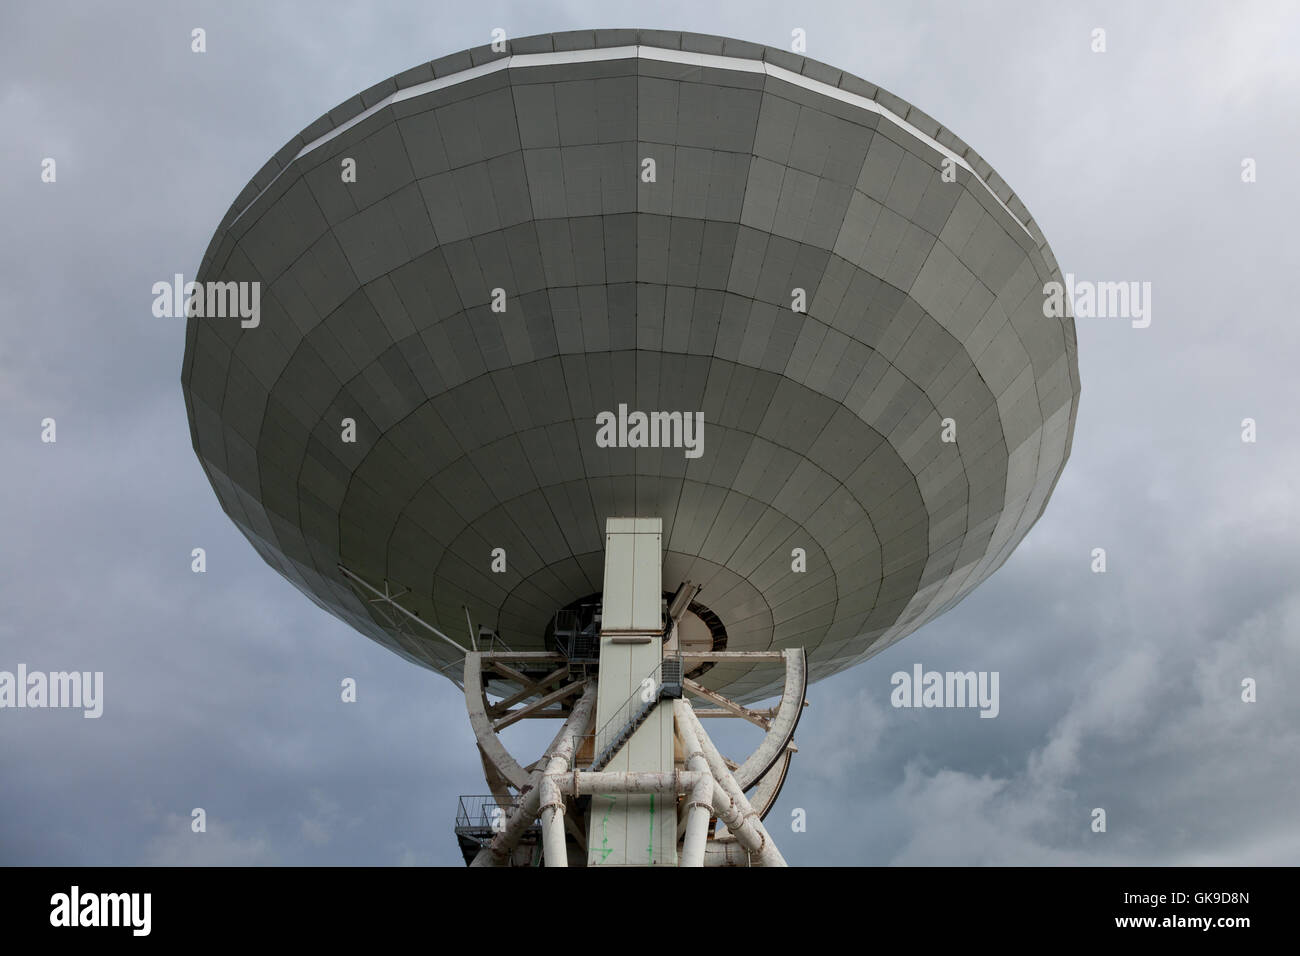 The 45 metre radio telescope at Nobeyama Radio Observatory (NRO) near Minamimaki, Nagano, Japan Tuesday August 16th - Stock Image